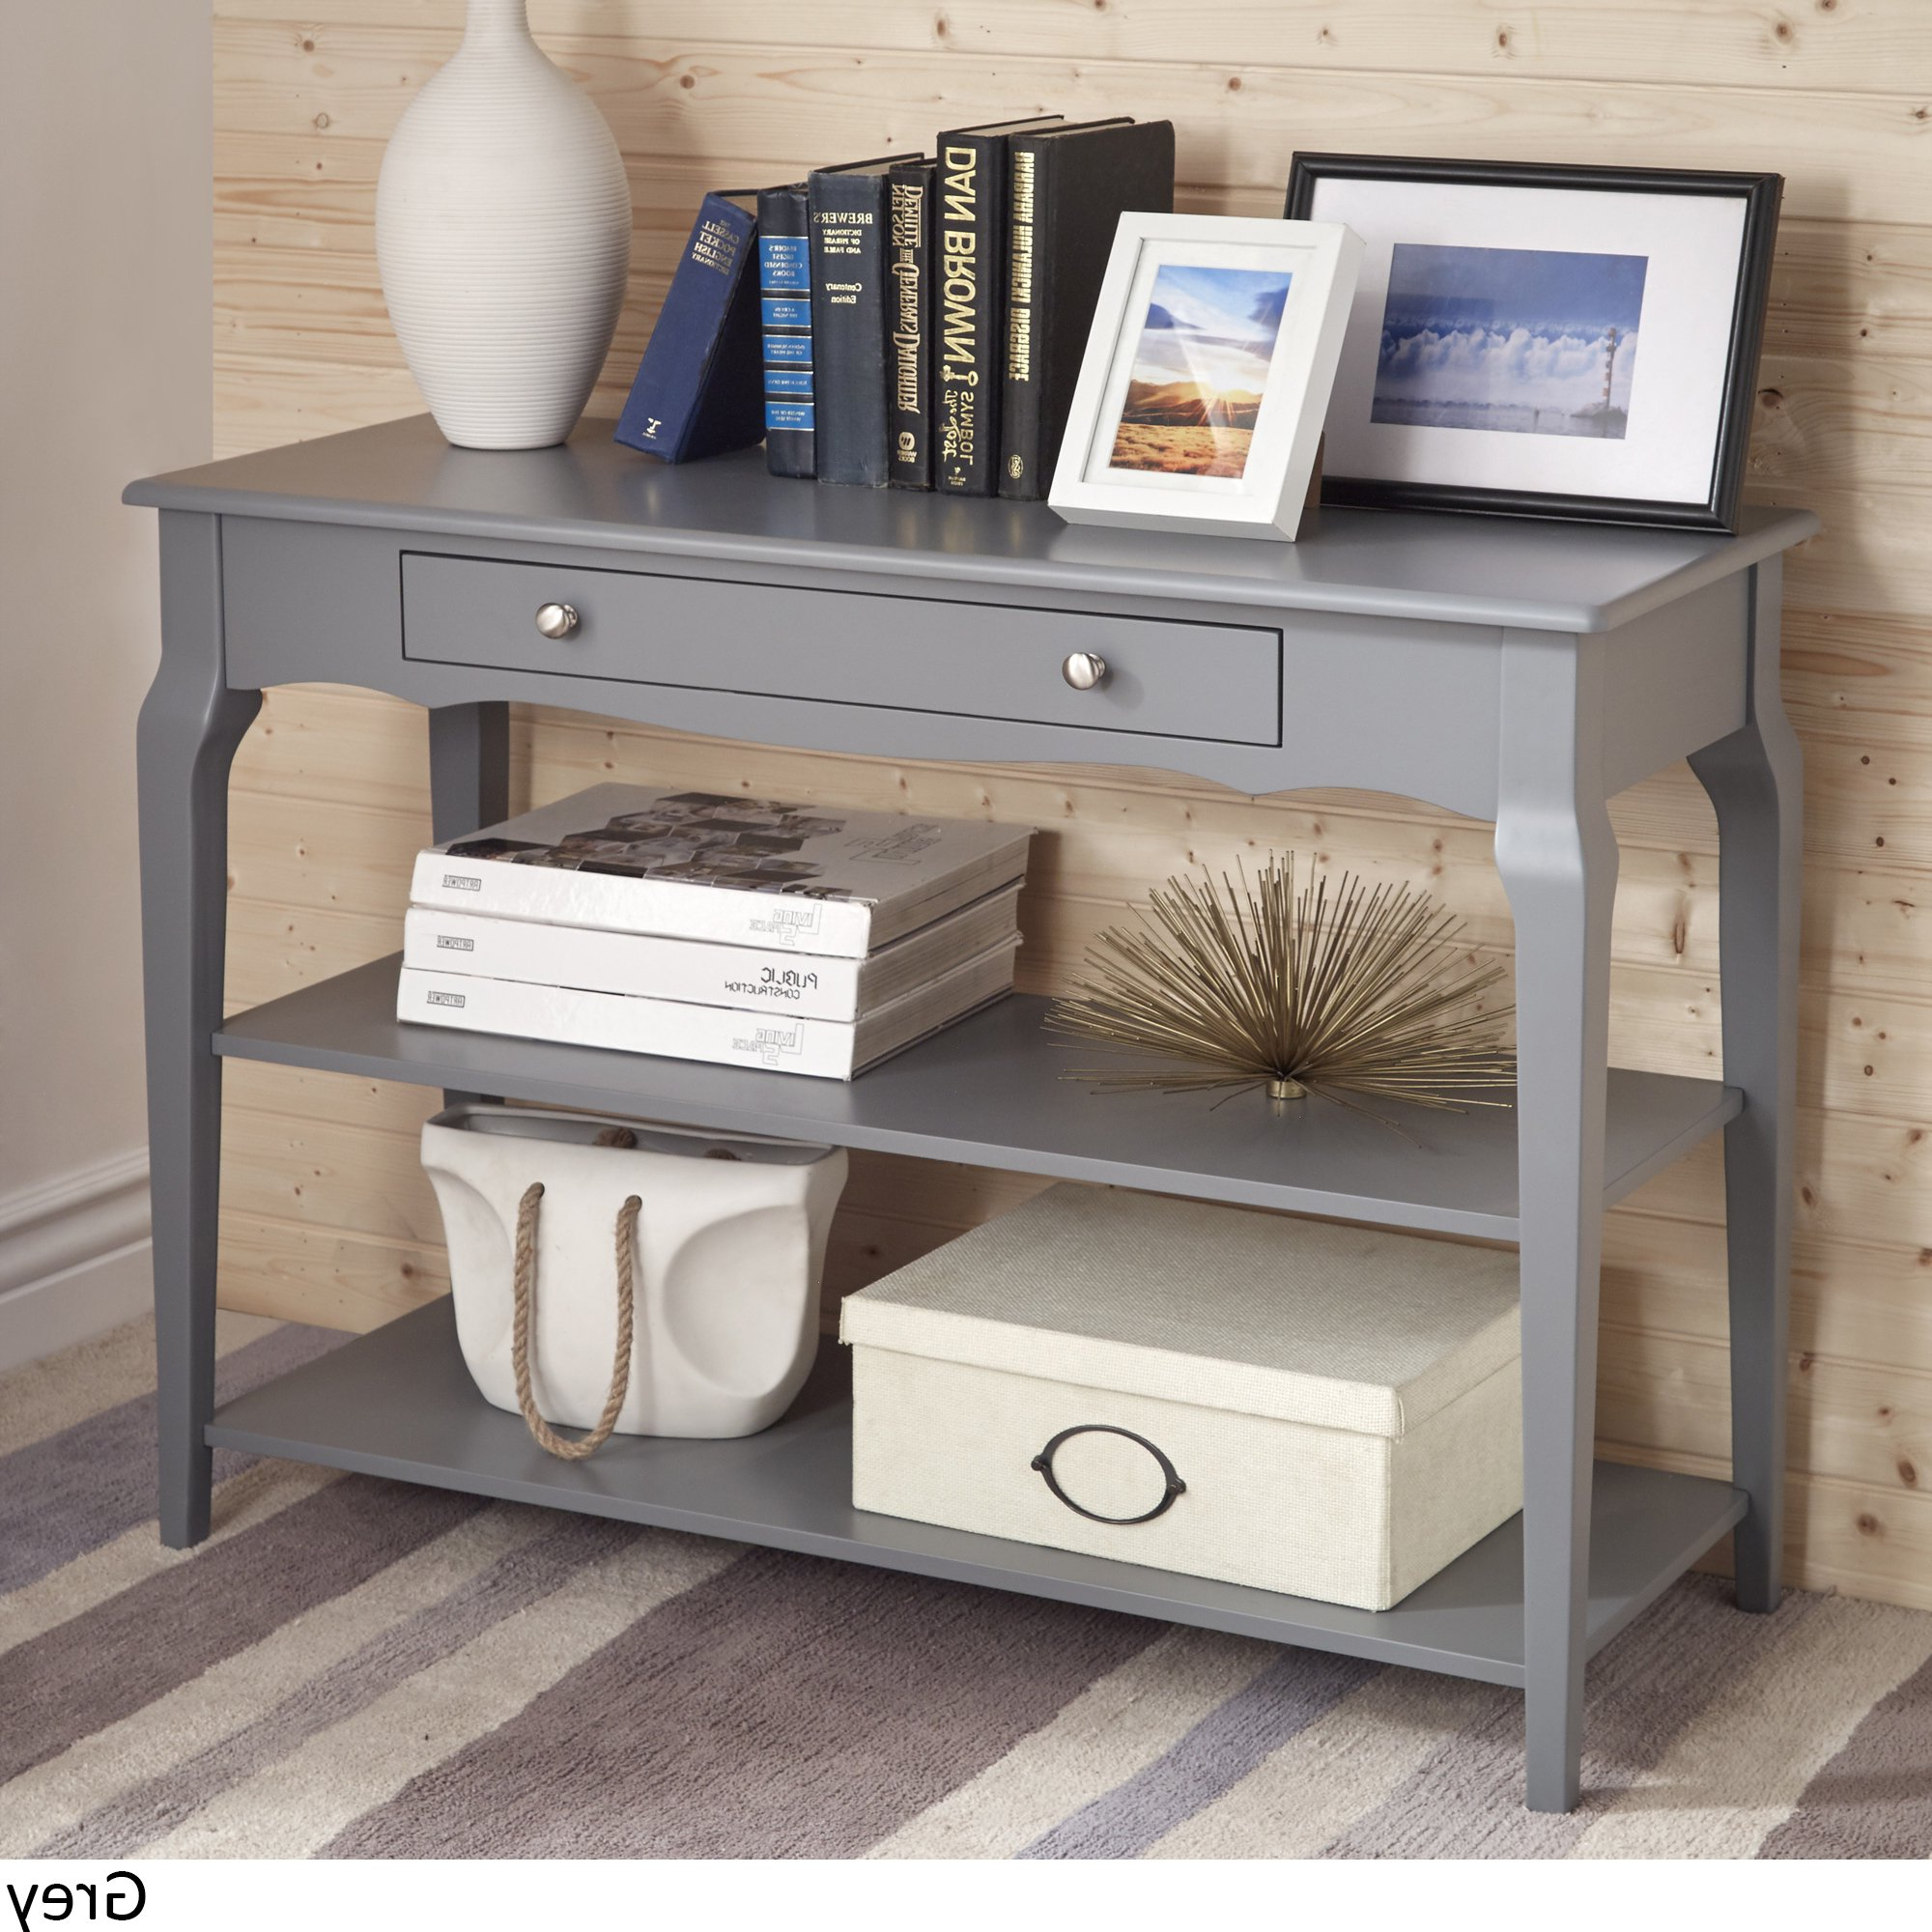 The North End Loft My Television Console Home Inspiration For Melrose Titanium 65 Inch Lowboy Tv Stands (View 18 of 18)